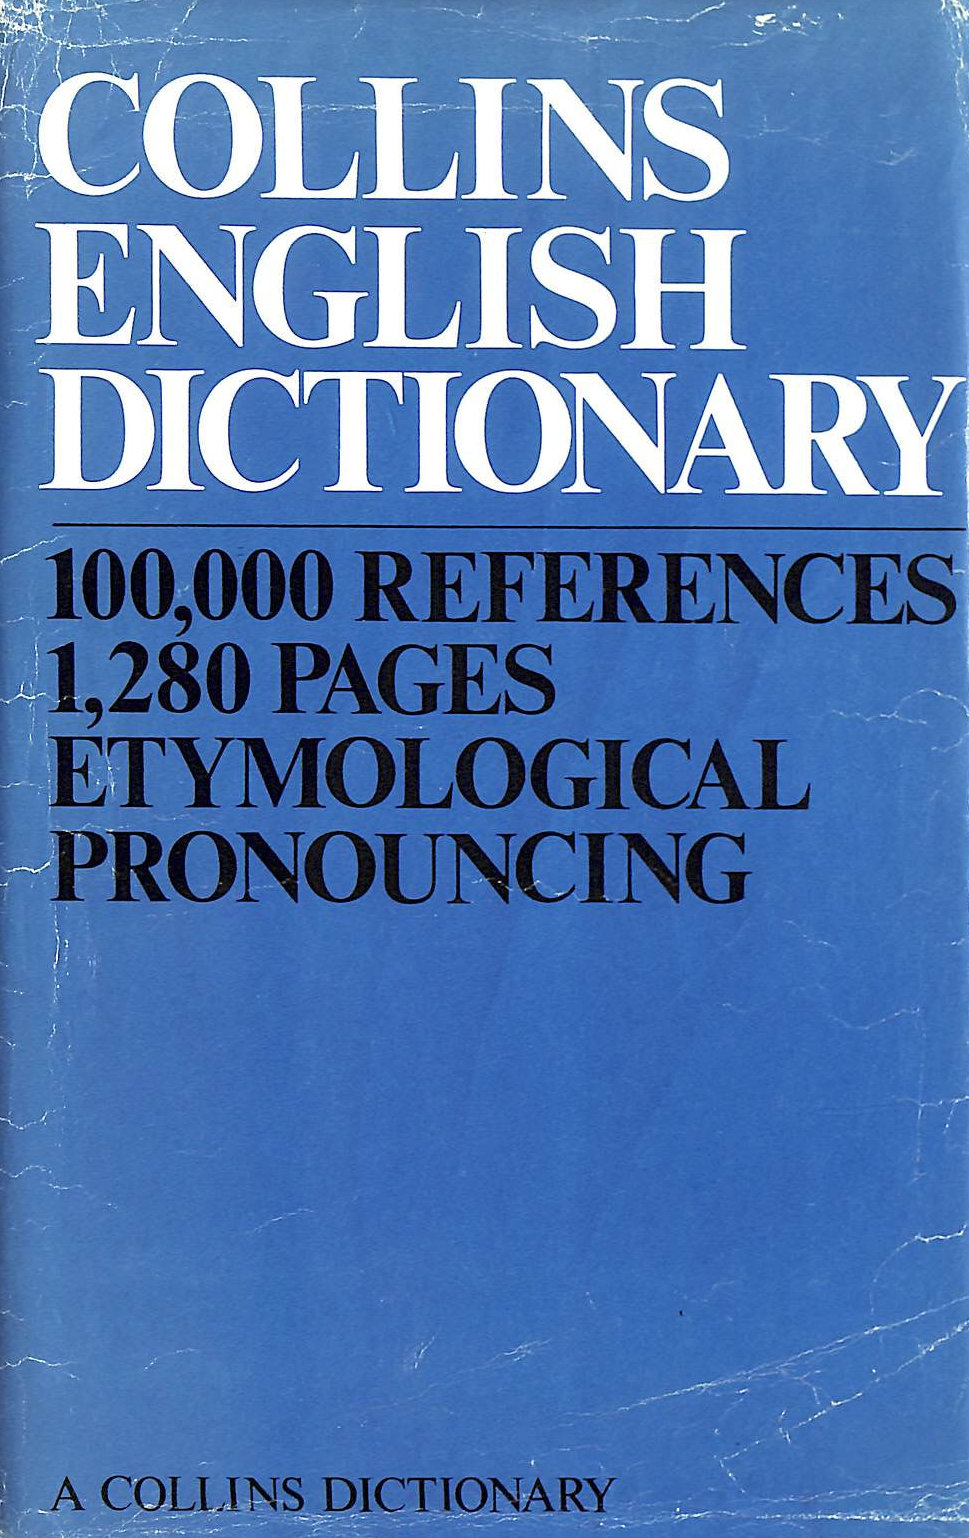 Image for Collins English Dictionary Etymological Pronouncing